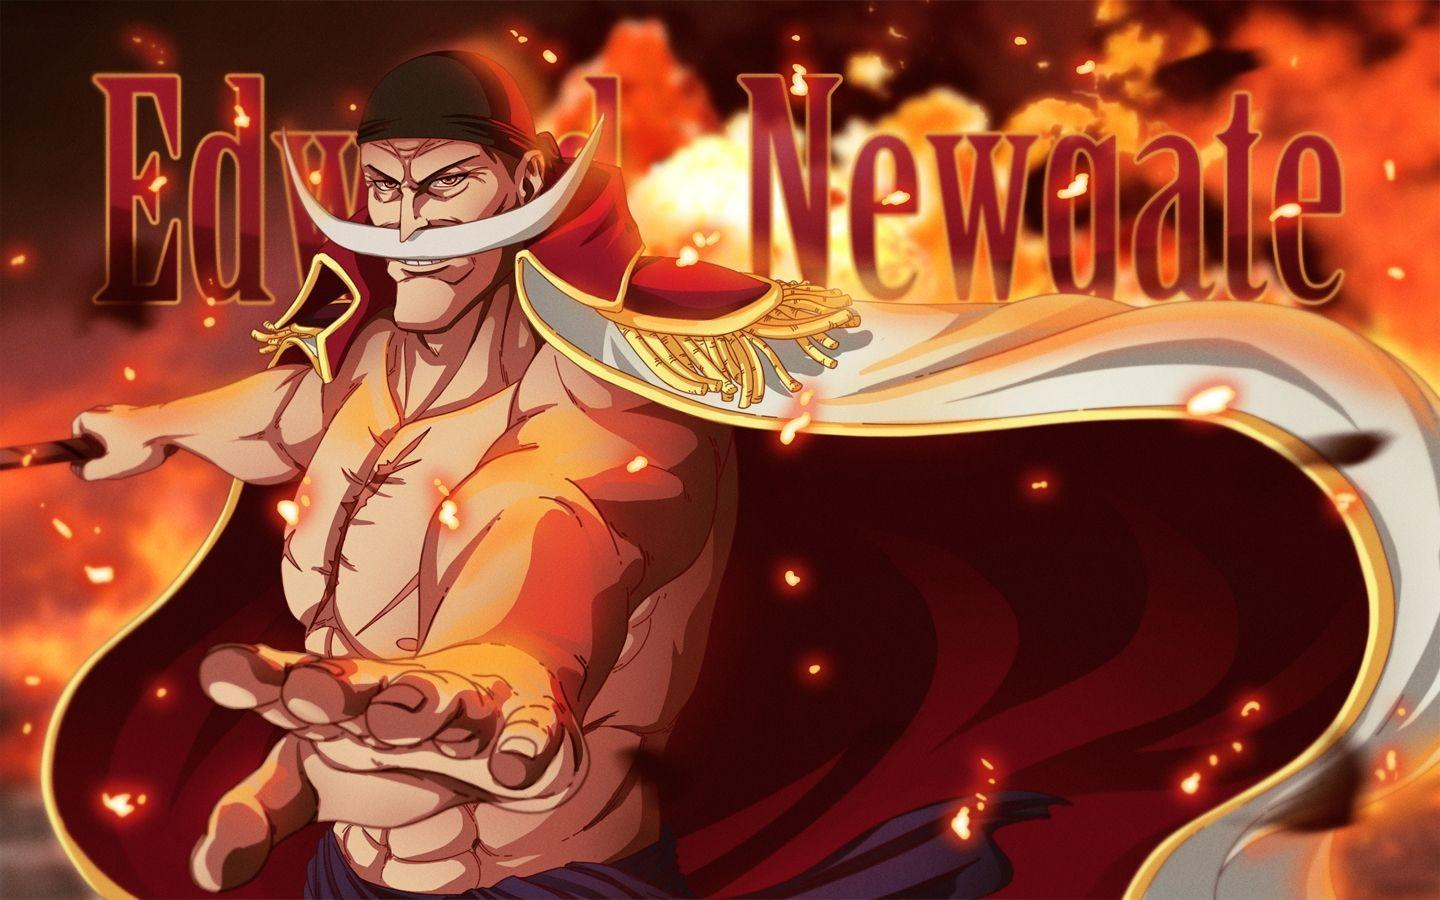 Edward Newgate Whitebeard wallpapers